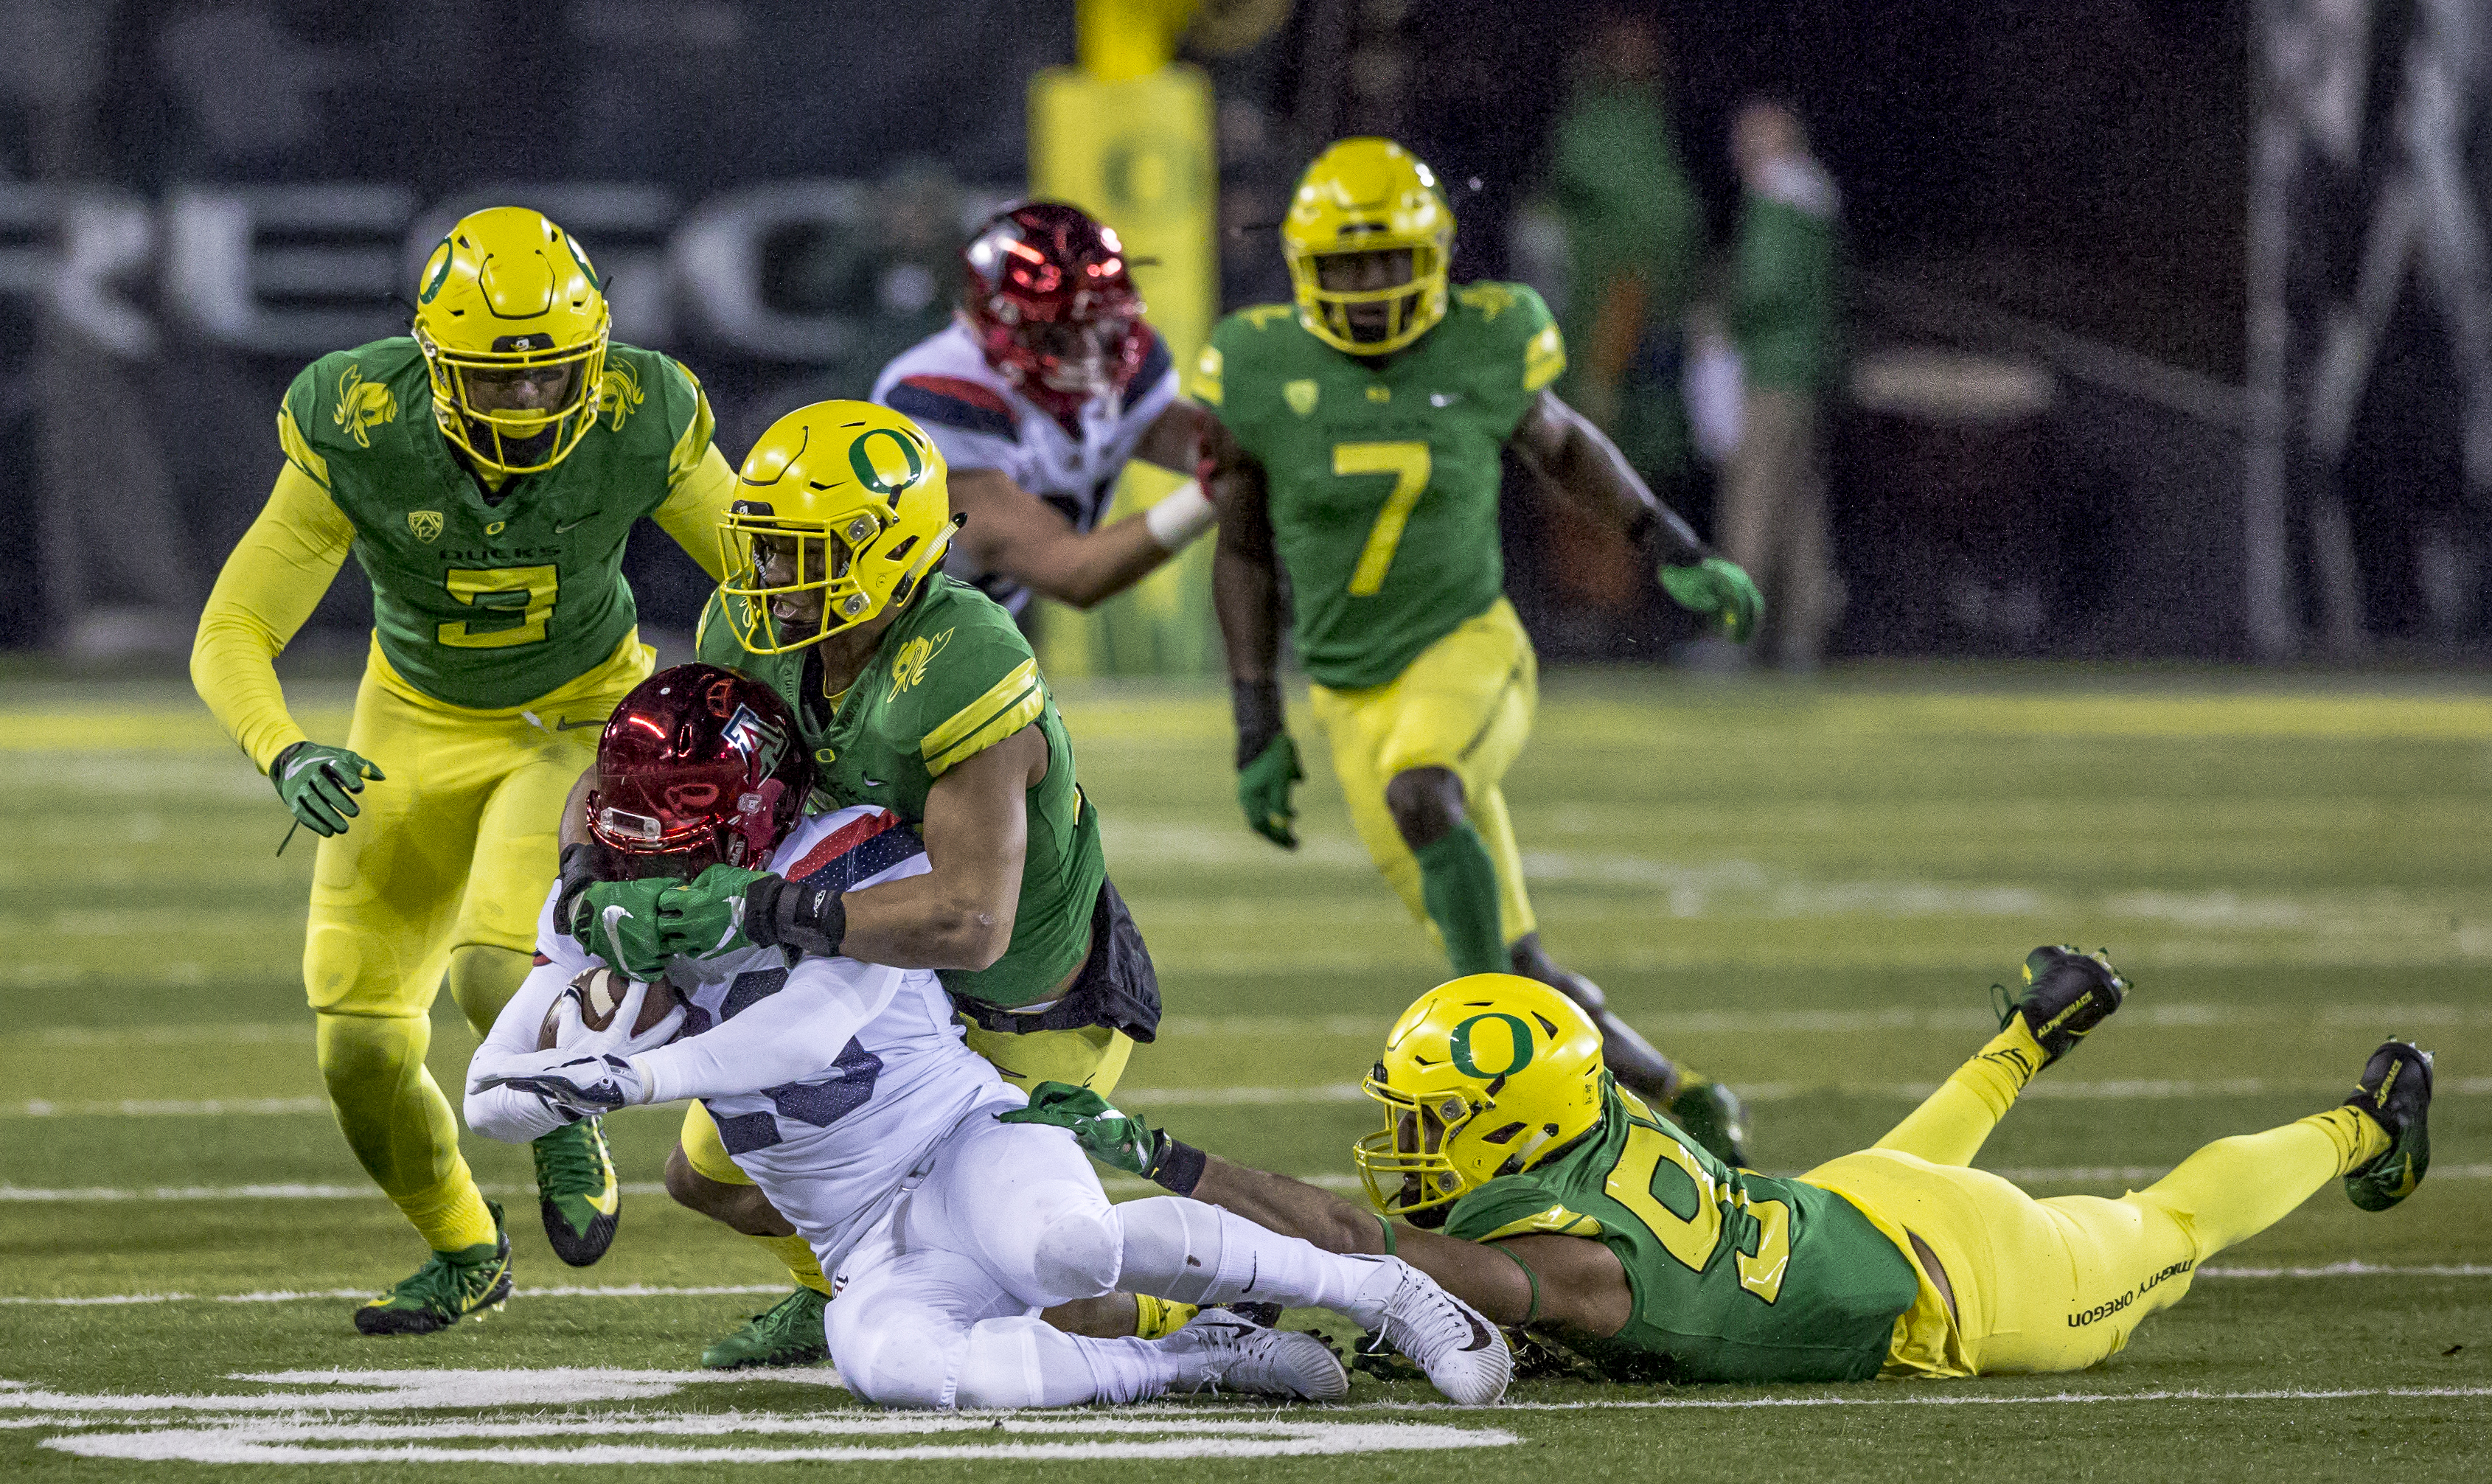 An Oregon defender brings down Arizona running back Nick Wilson (#28). The Oregon Ducks lead the Arizona Wildcats 28 to 21 at the end of the first half at Autzen Stadium on Saturday, November 18, 2017. Photo by Ben Lonergan, Oregon News Lab